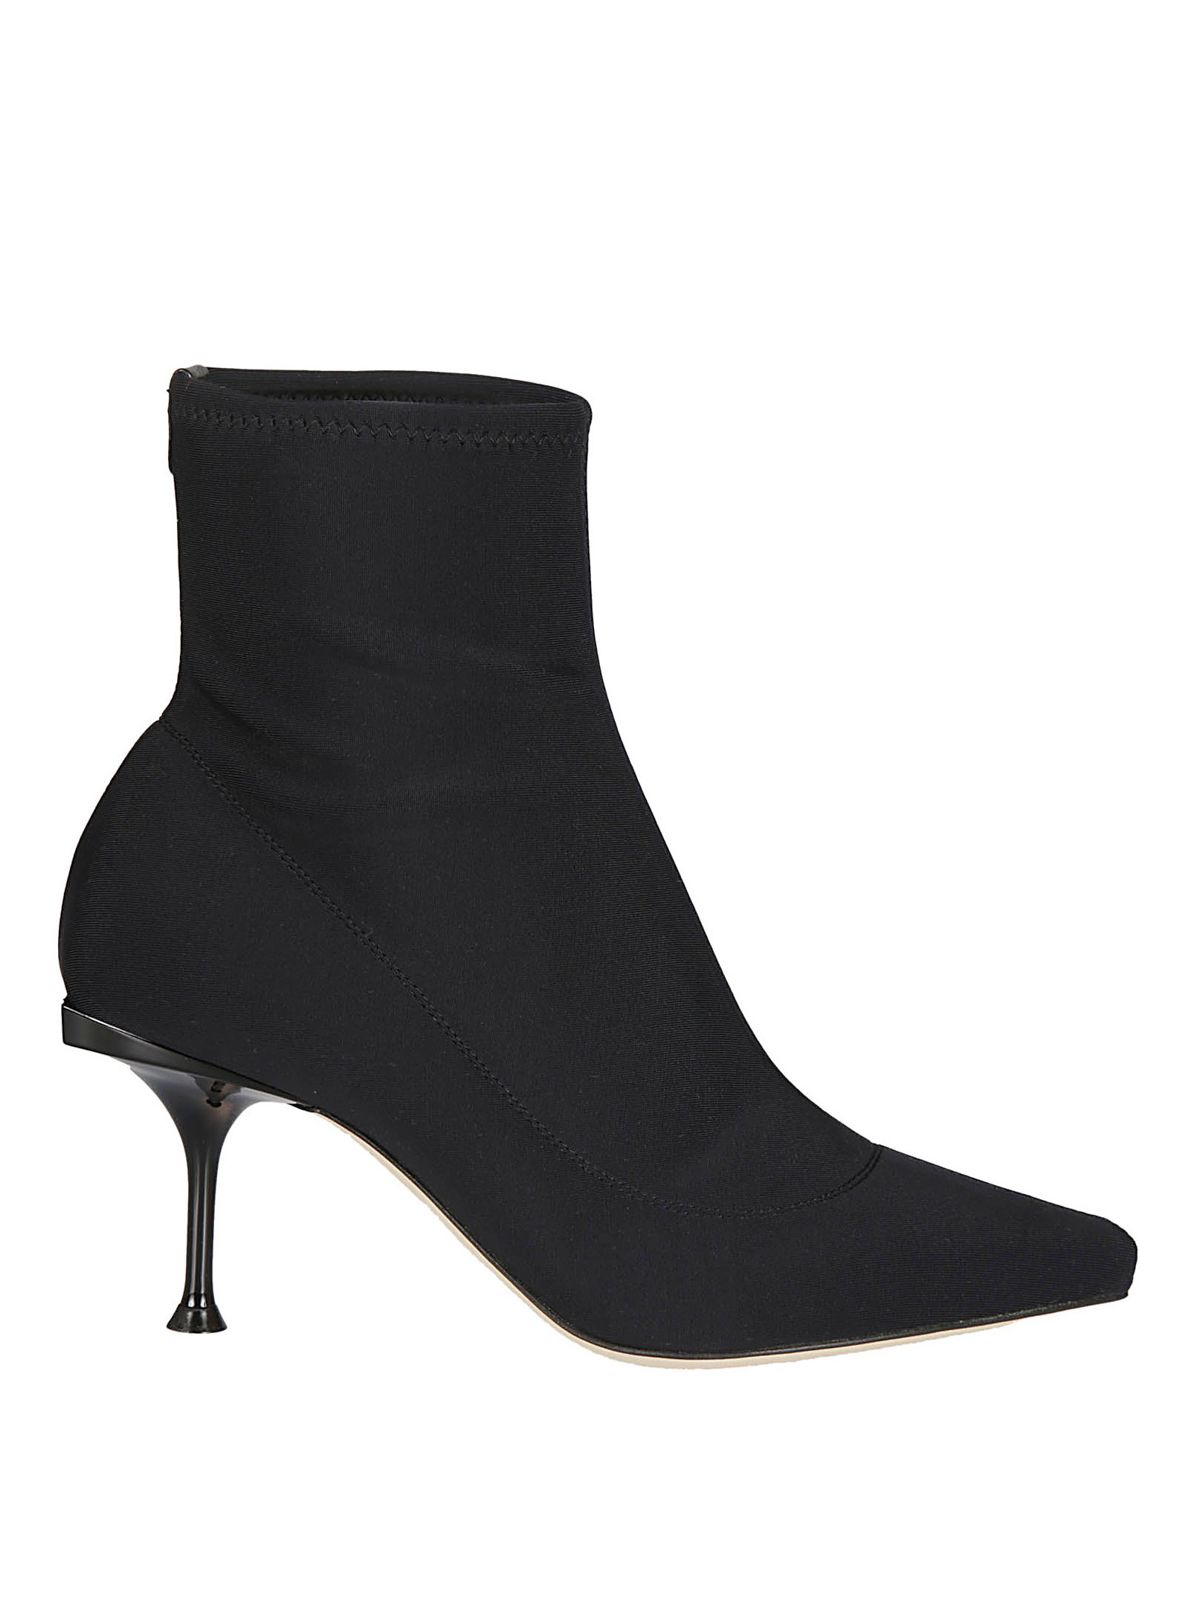 Sergio Rossi Pointy Toe Neoprene Effect Ankle Boots